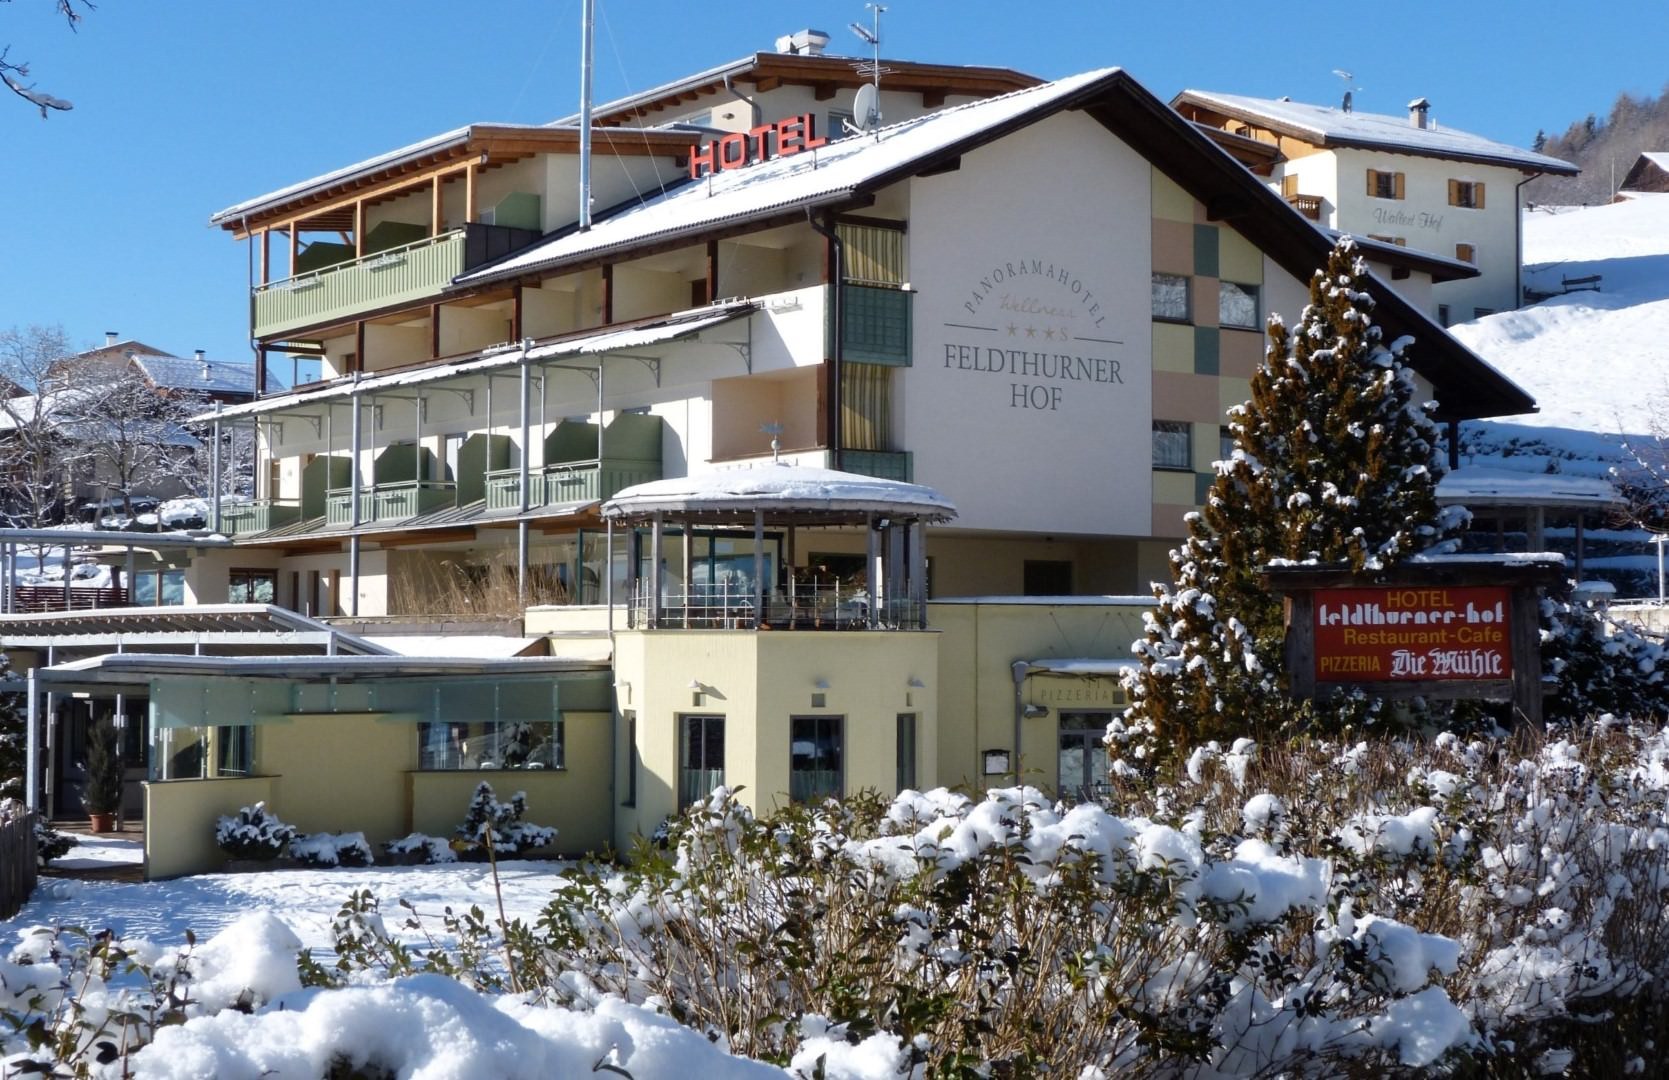 Panorama Wellnesshotel Feldthurnerhof (Feldthurns)